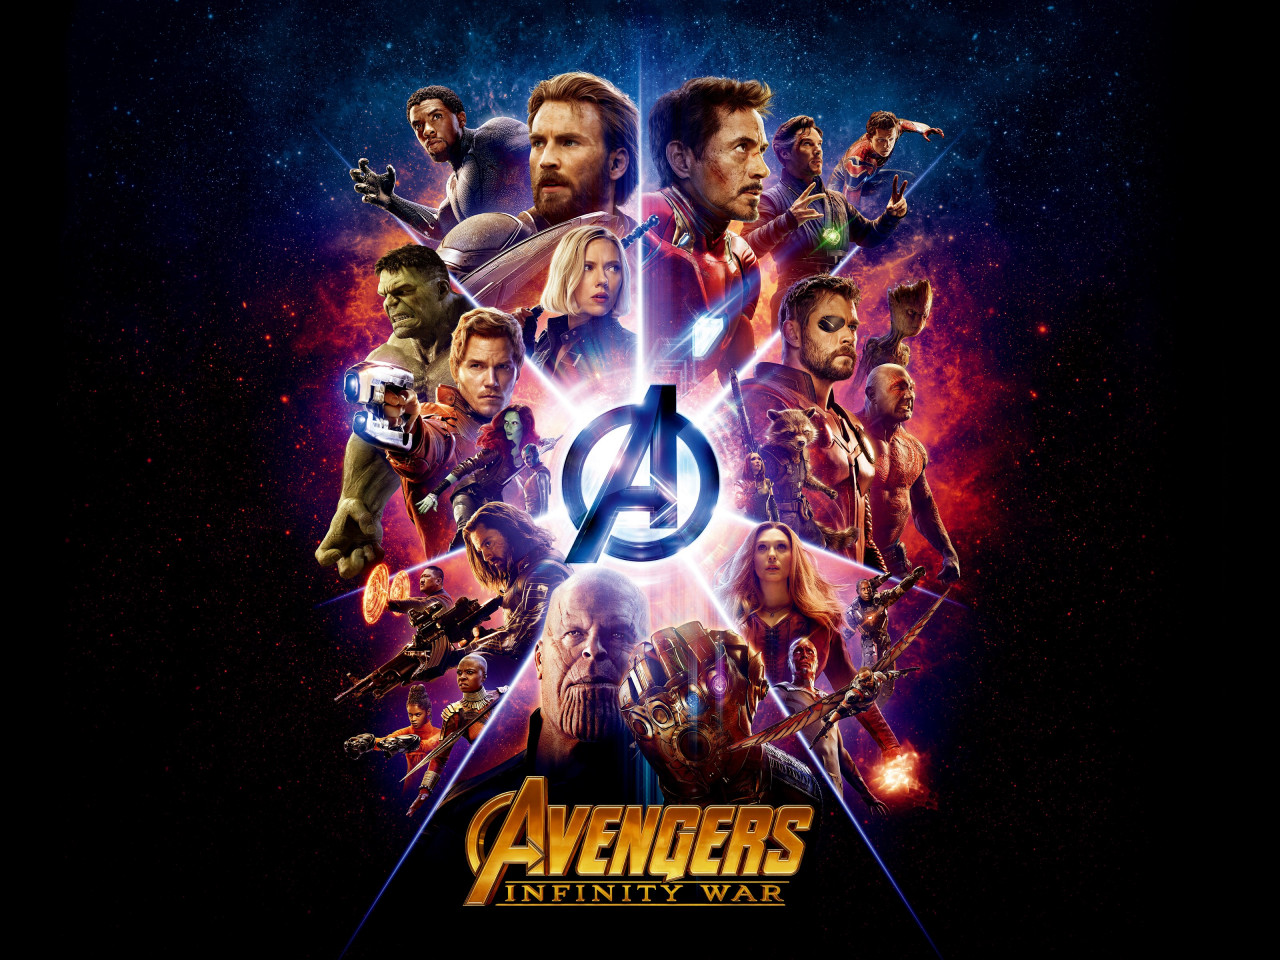 All the heroes from Avengers: Infinity War wallpaper 1280x960